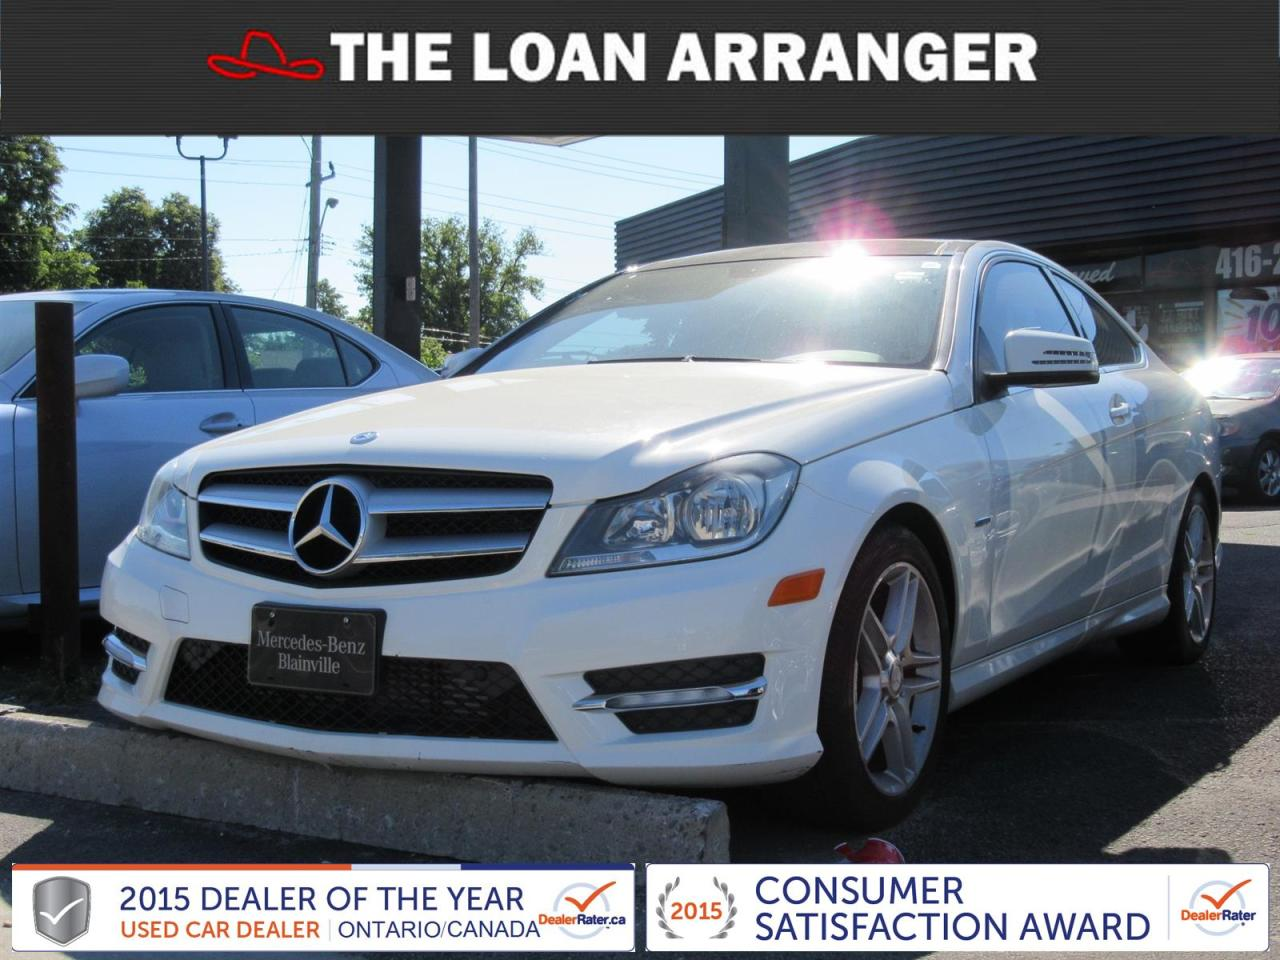 benz view natal com south usedcarsouthafrica auto mercedes usedcars africa in class used vryheid sale for b kwazulu car